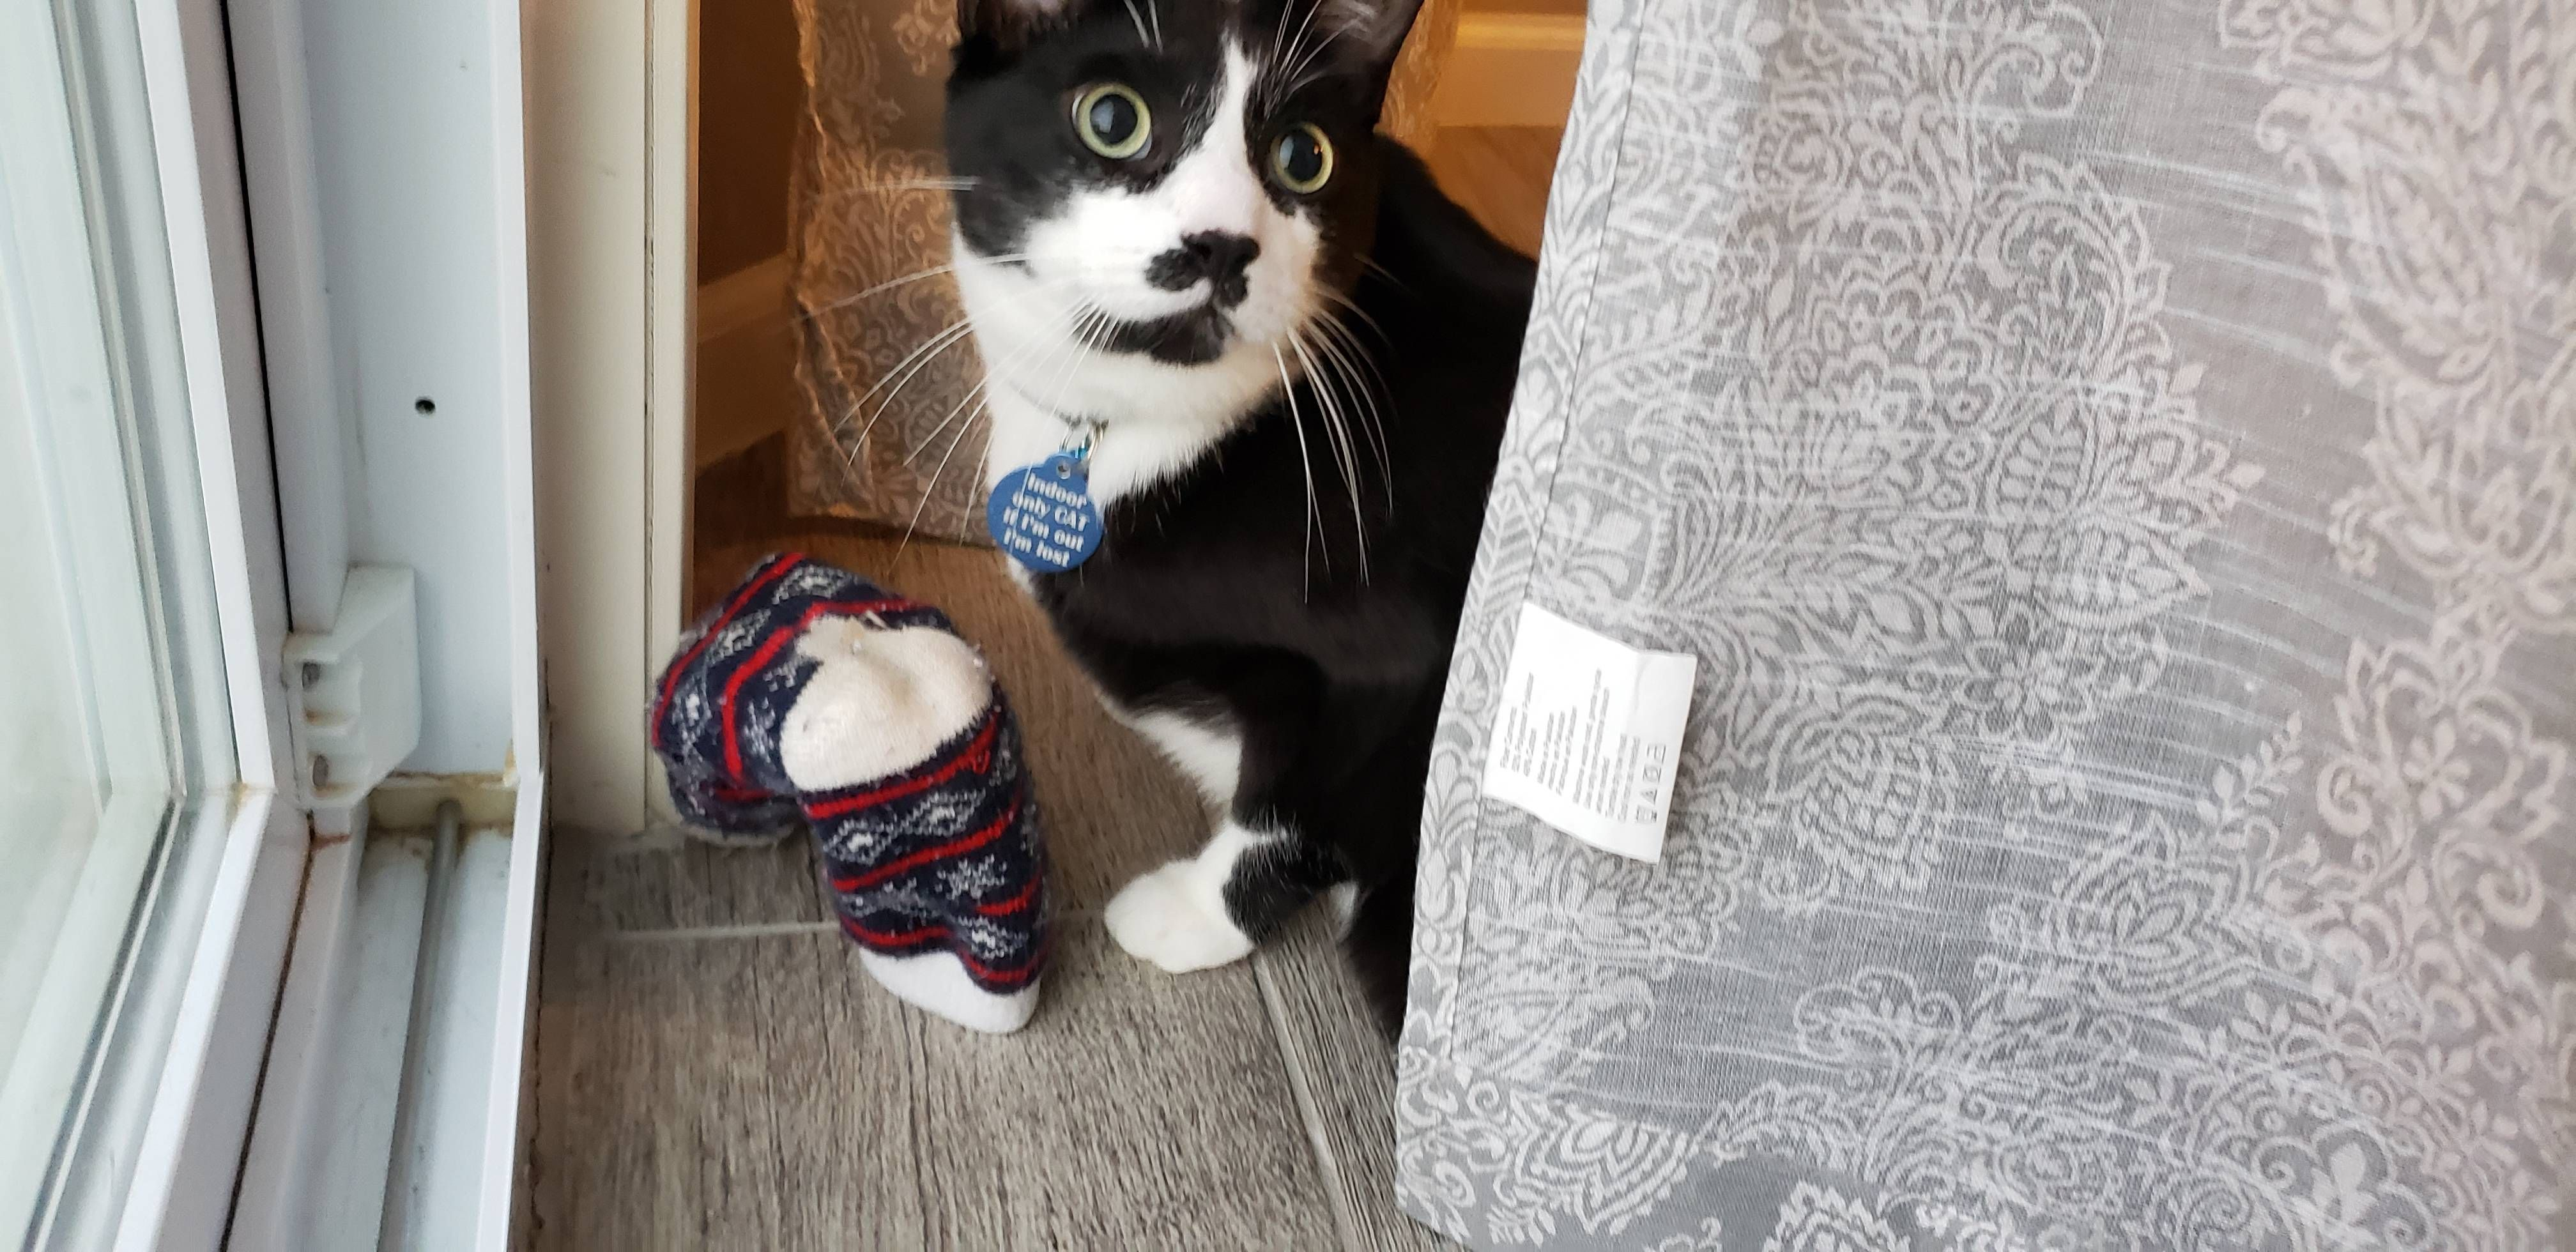 Our Cat Misses My Wife When Shes At Work So Everyday He Grabs Her House Sock To Cuddle With Http Bit Ly 2m9jhes House Socks Cats Missing My Wife